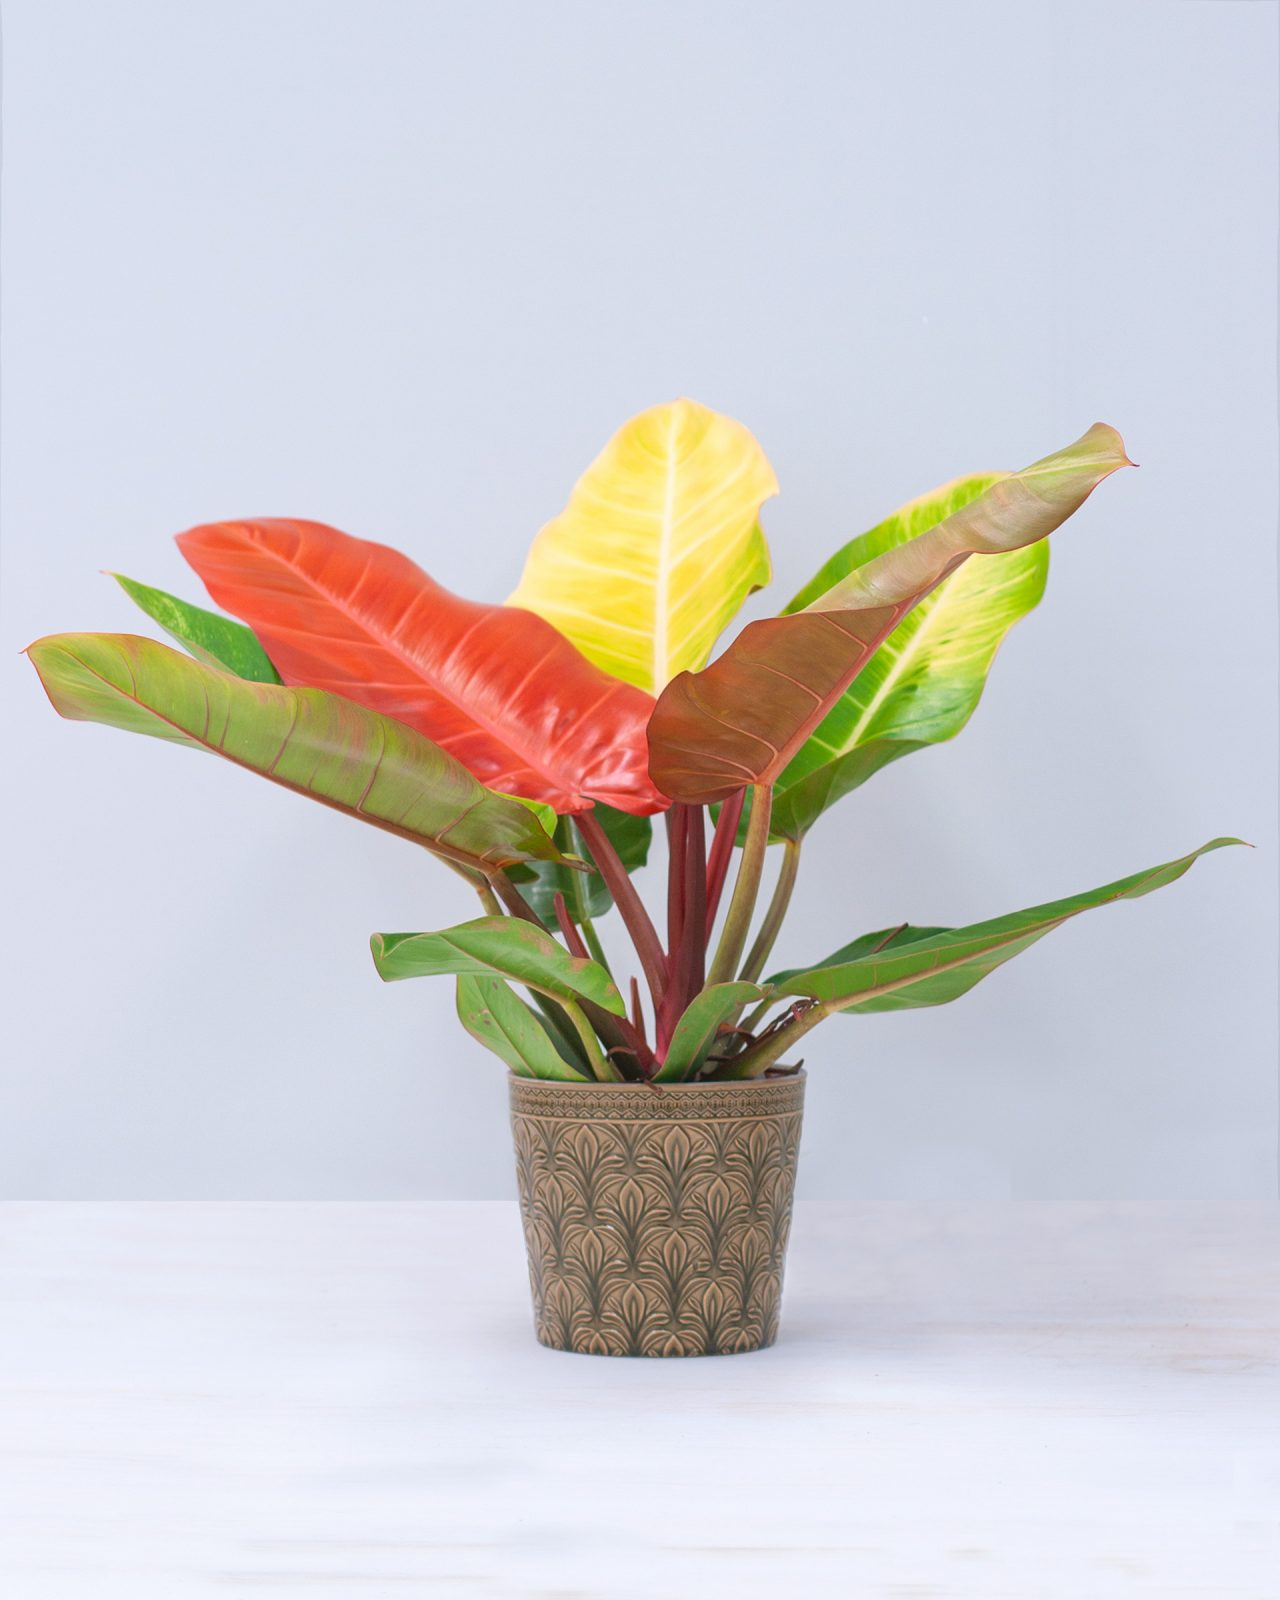 prince of orange philodendron plnts